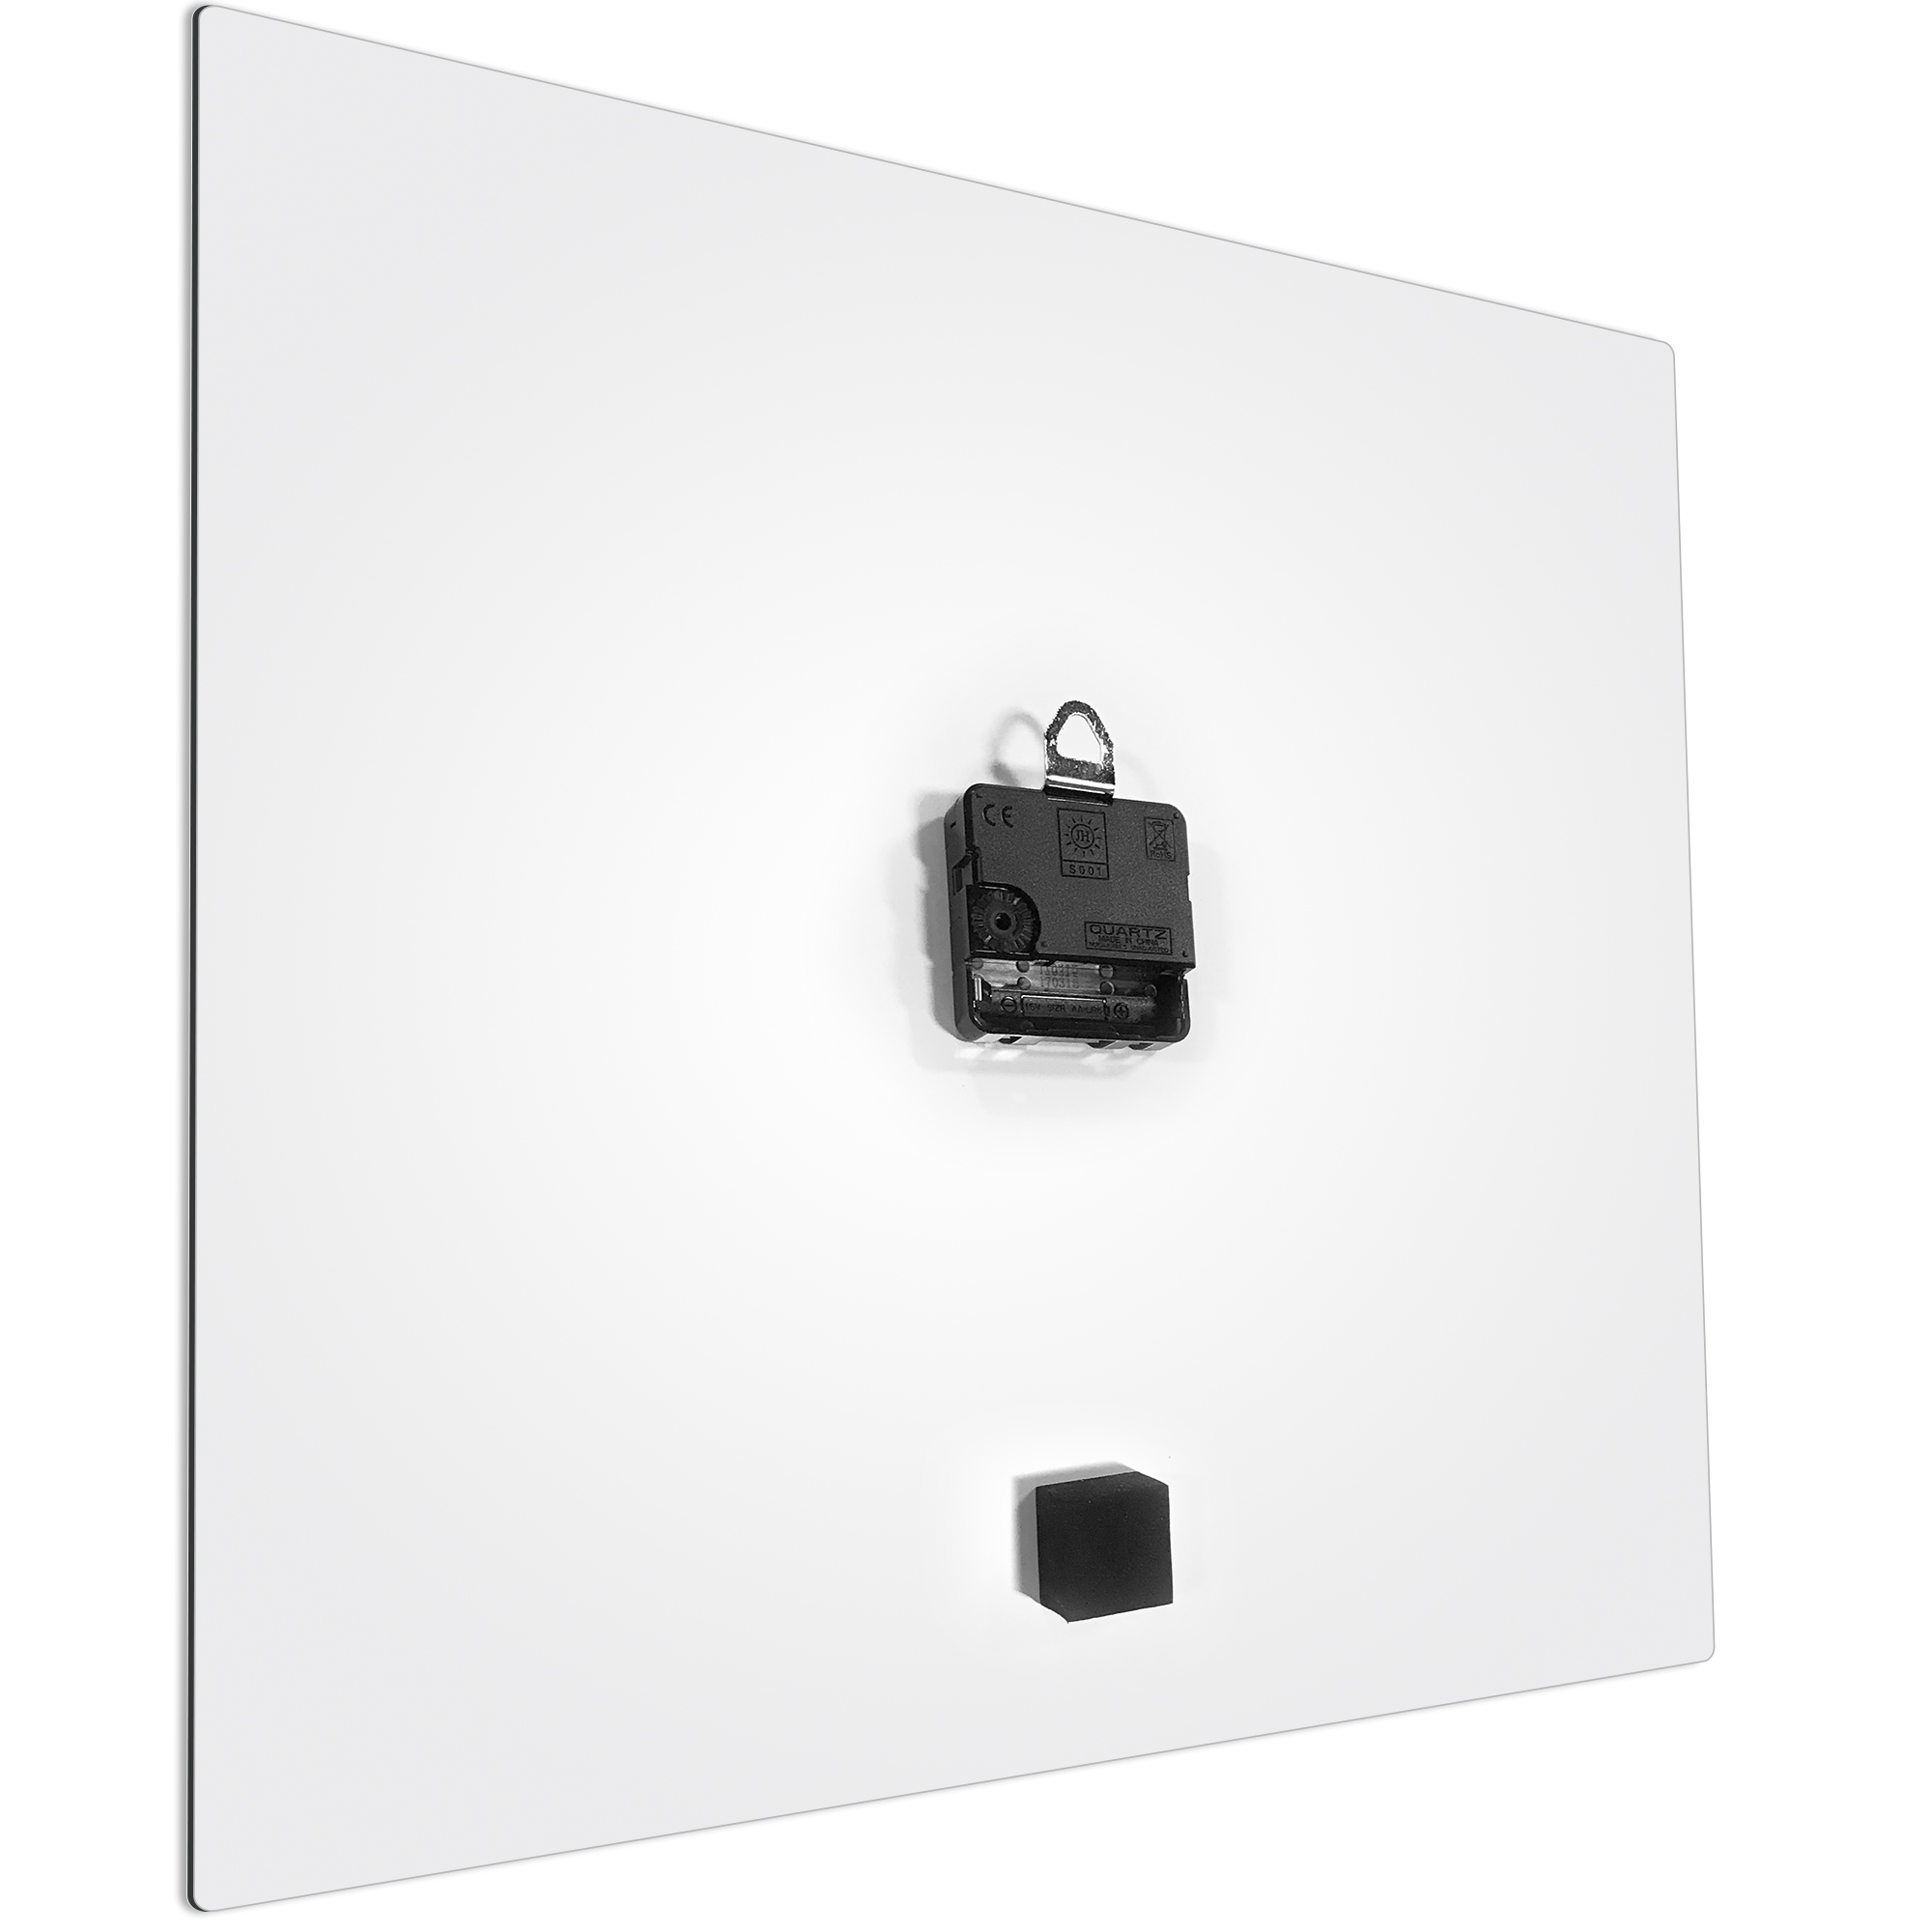 Blackout Grey Square Clock by Adam Schwoeppe Contemporary Clock on Aluminum Polymetal - Alternate View 3